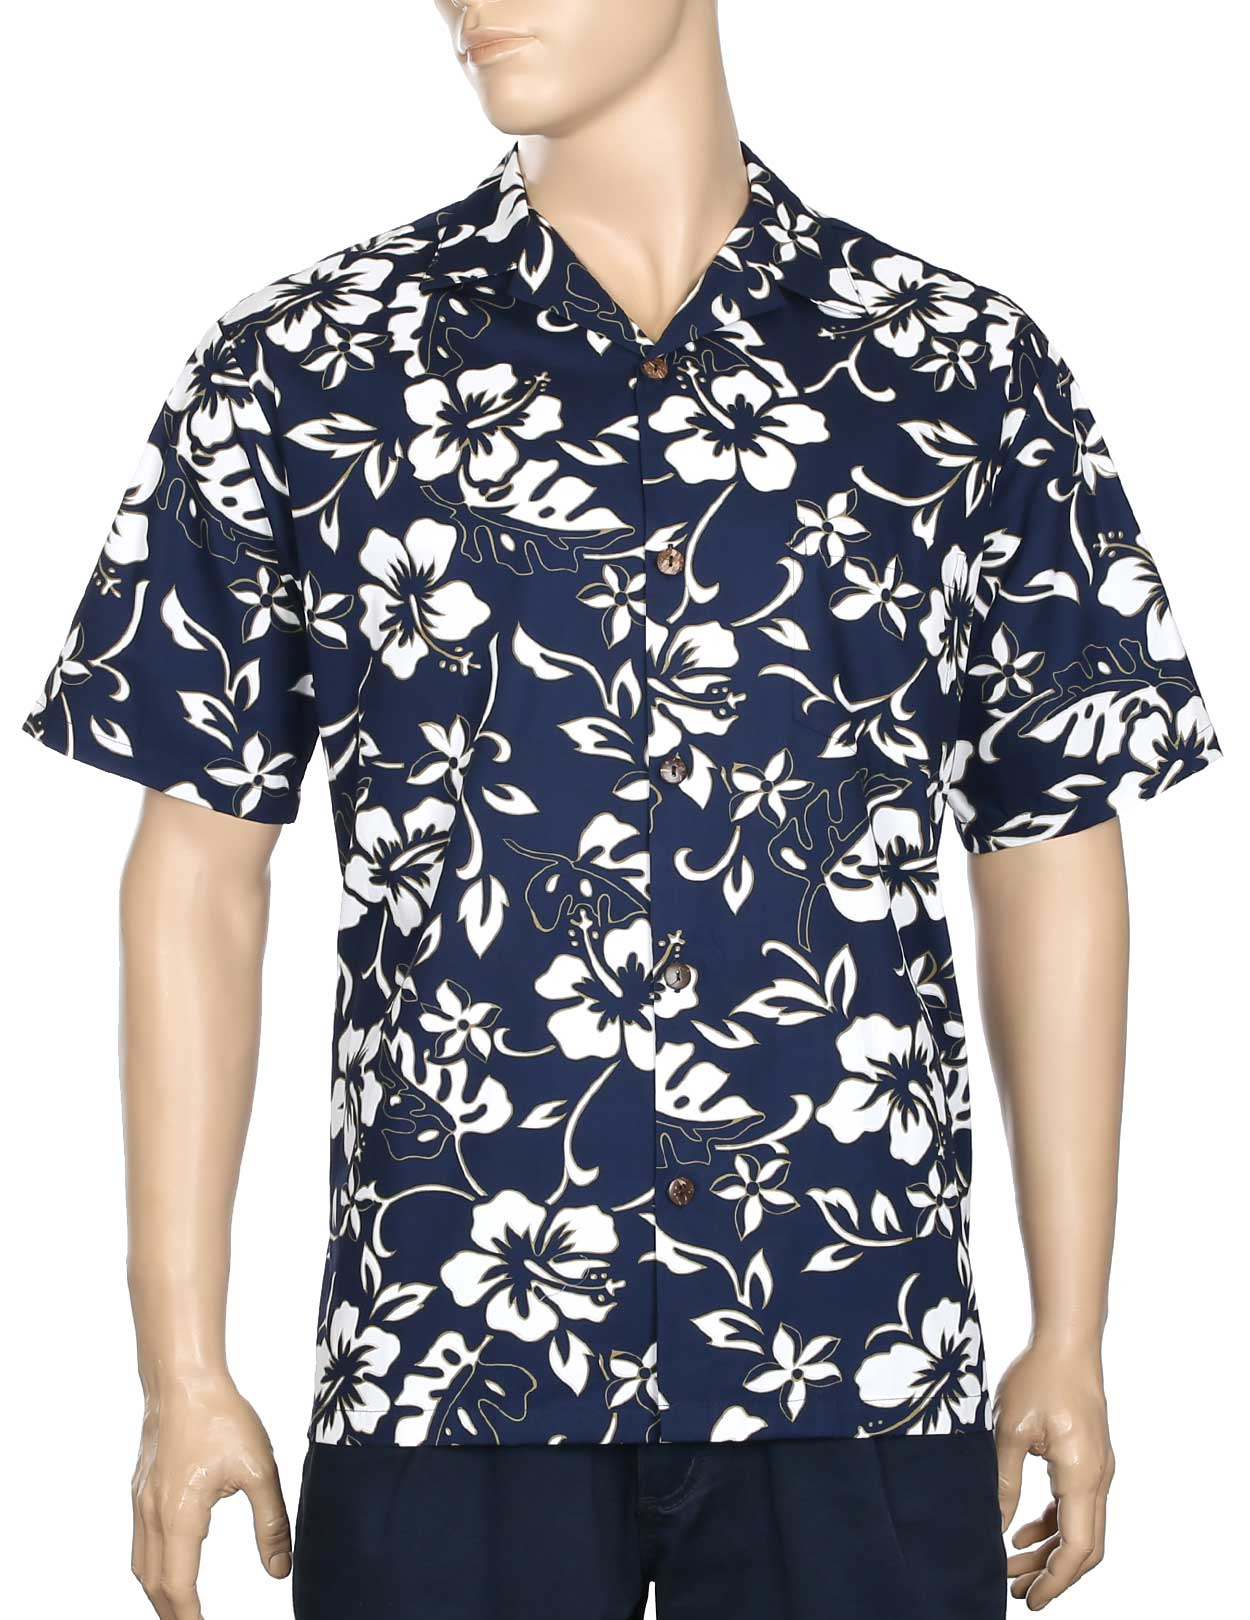 ecc73edc Classic Hibiscus Pareo Aloha Shirt Quick View. Classic Hibiscus Pareo Aloha  Shirt. $39.95 · Pineapple Panel Hawaiian Shirt